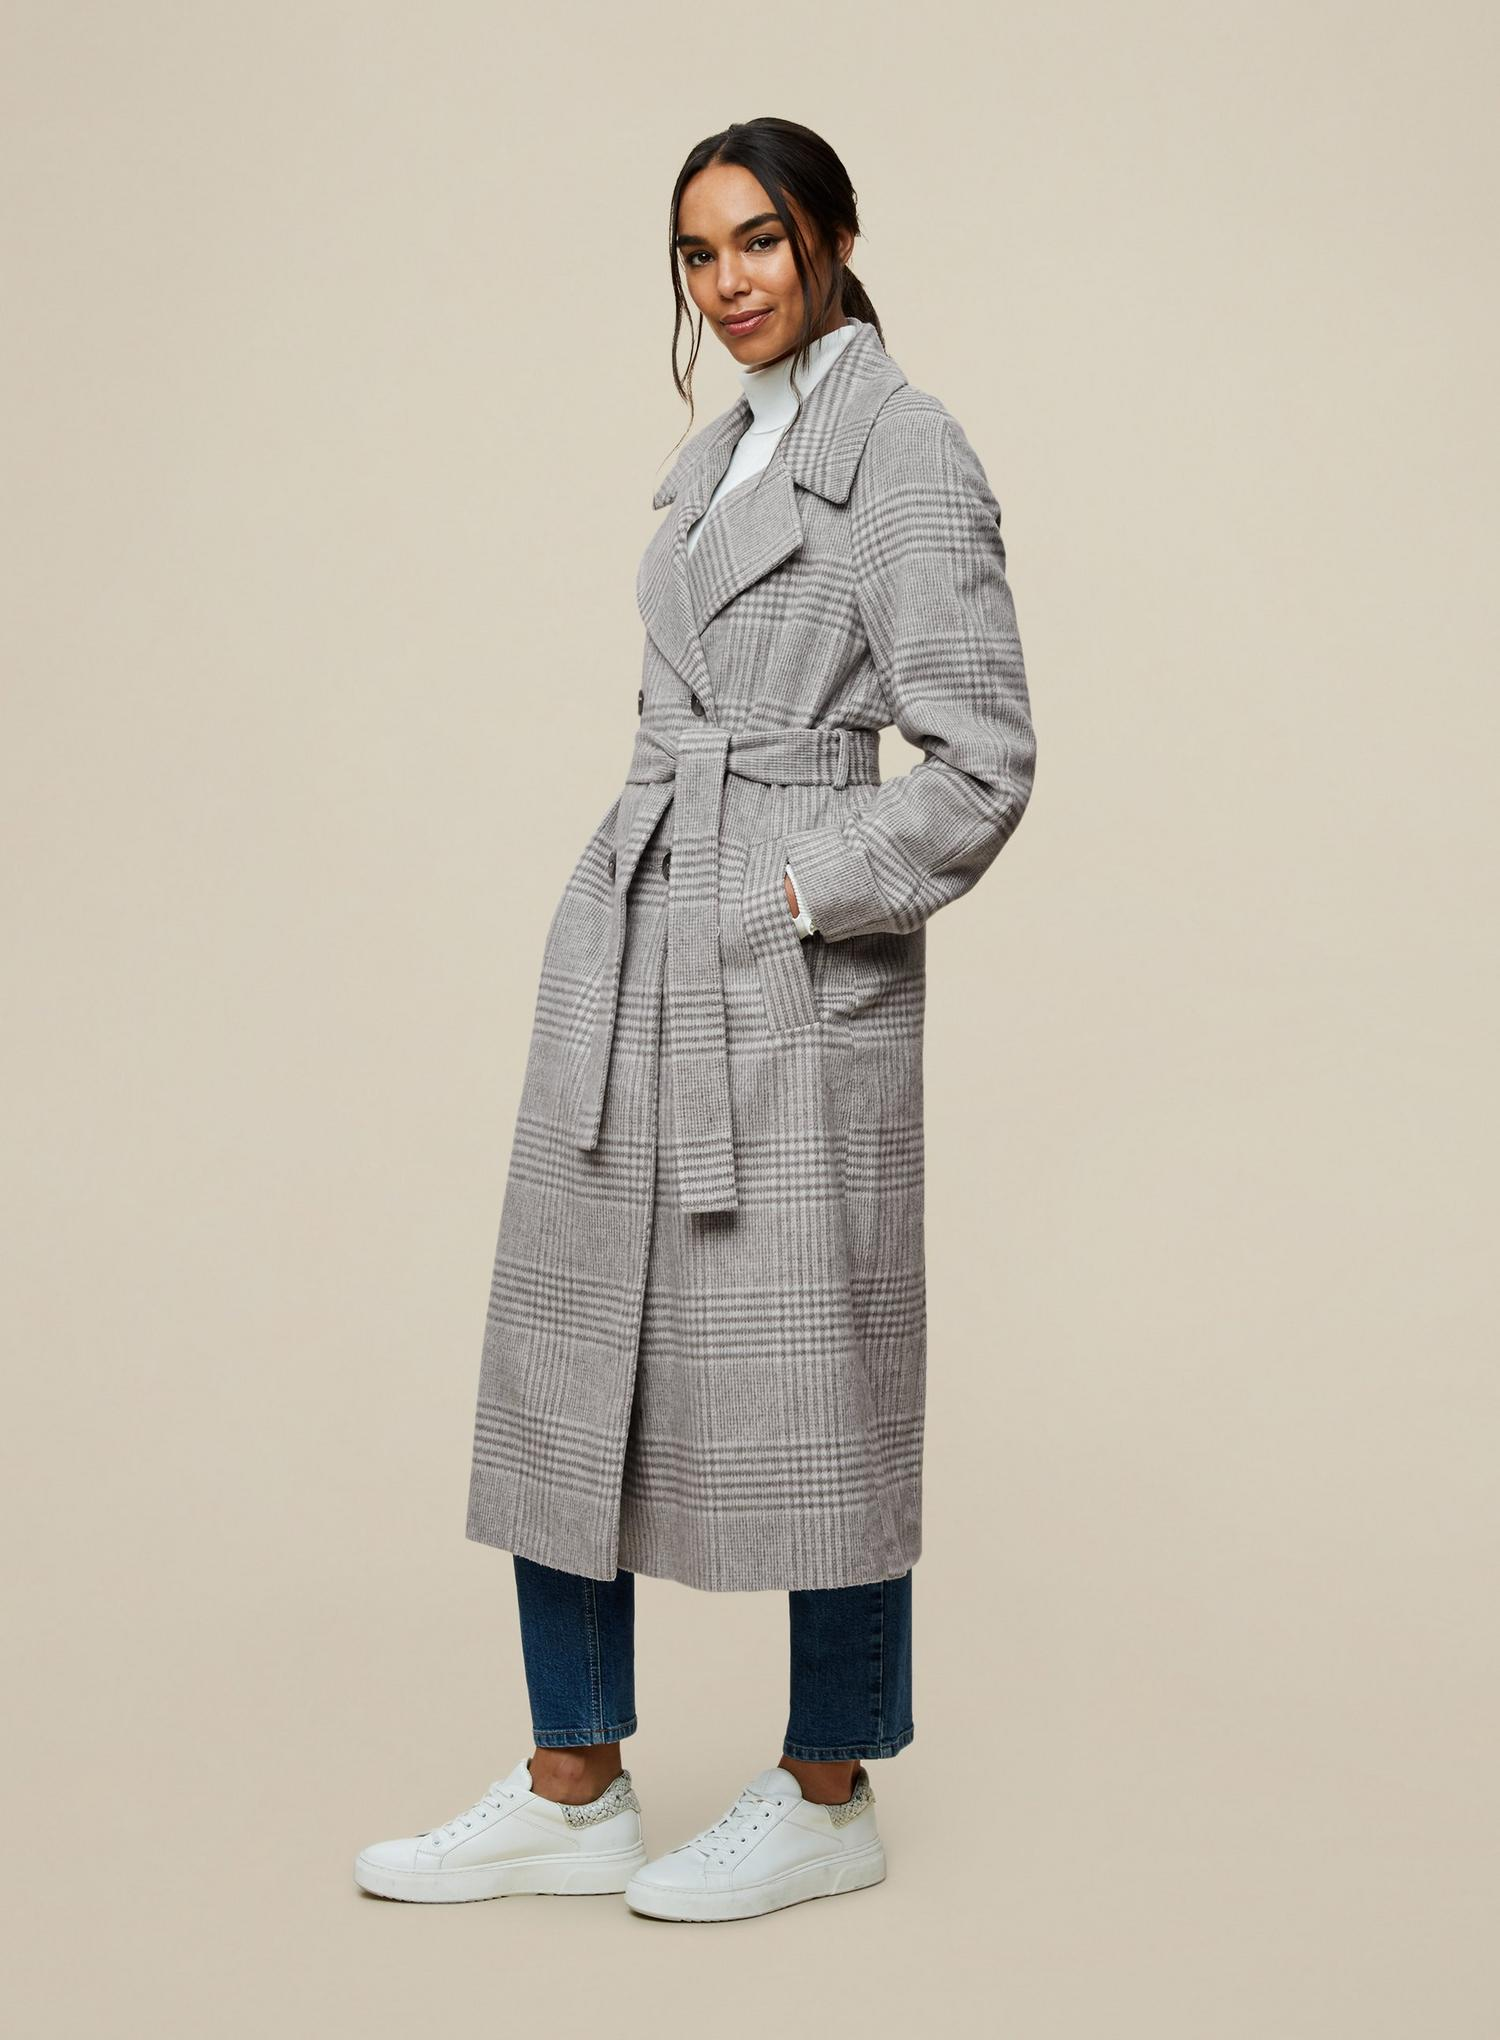 131 Check Double Breasted Wrap Maxi Coat image number 1